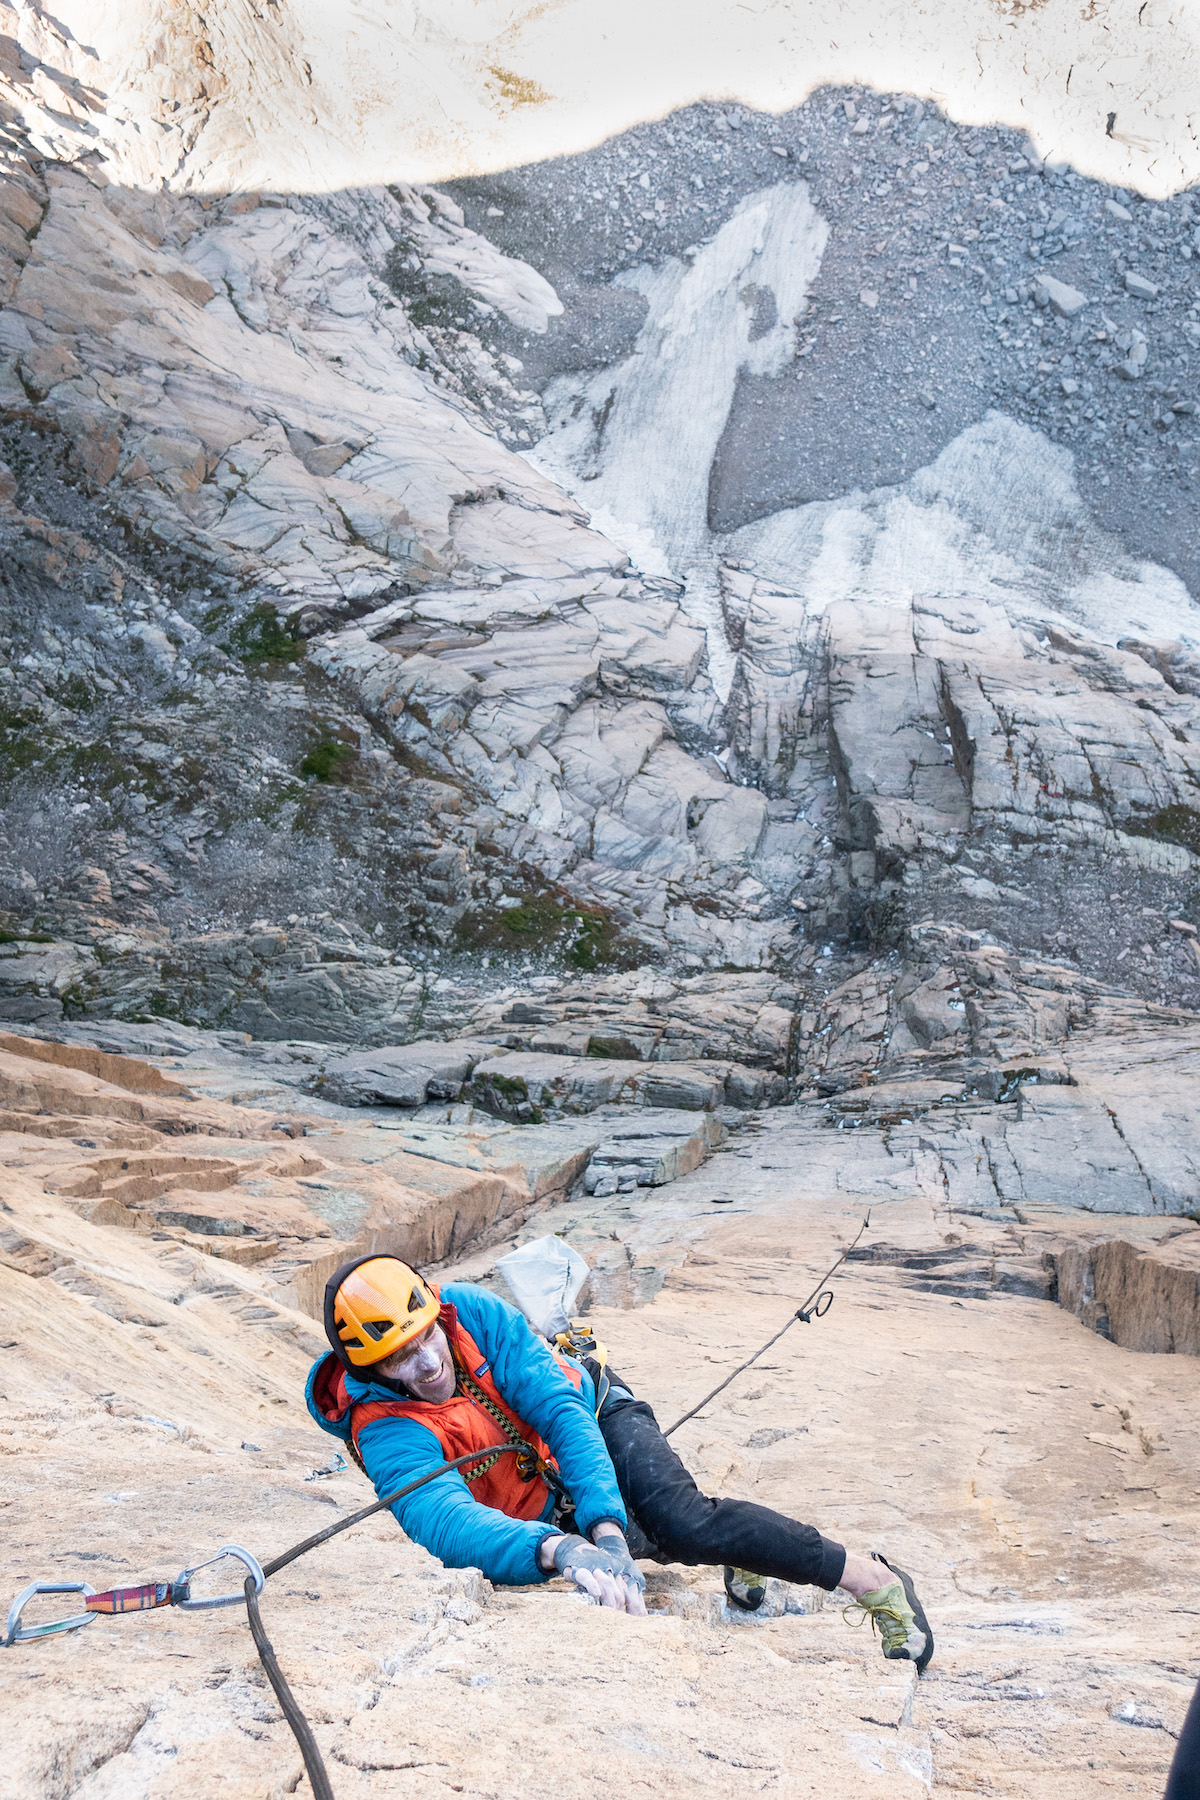 Miller toprope soloing on Gamblers Fallacy. [Photo] Chris Weidner